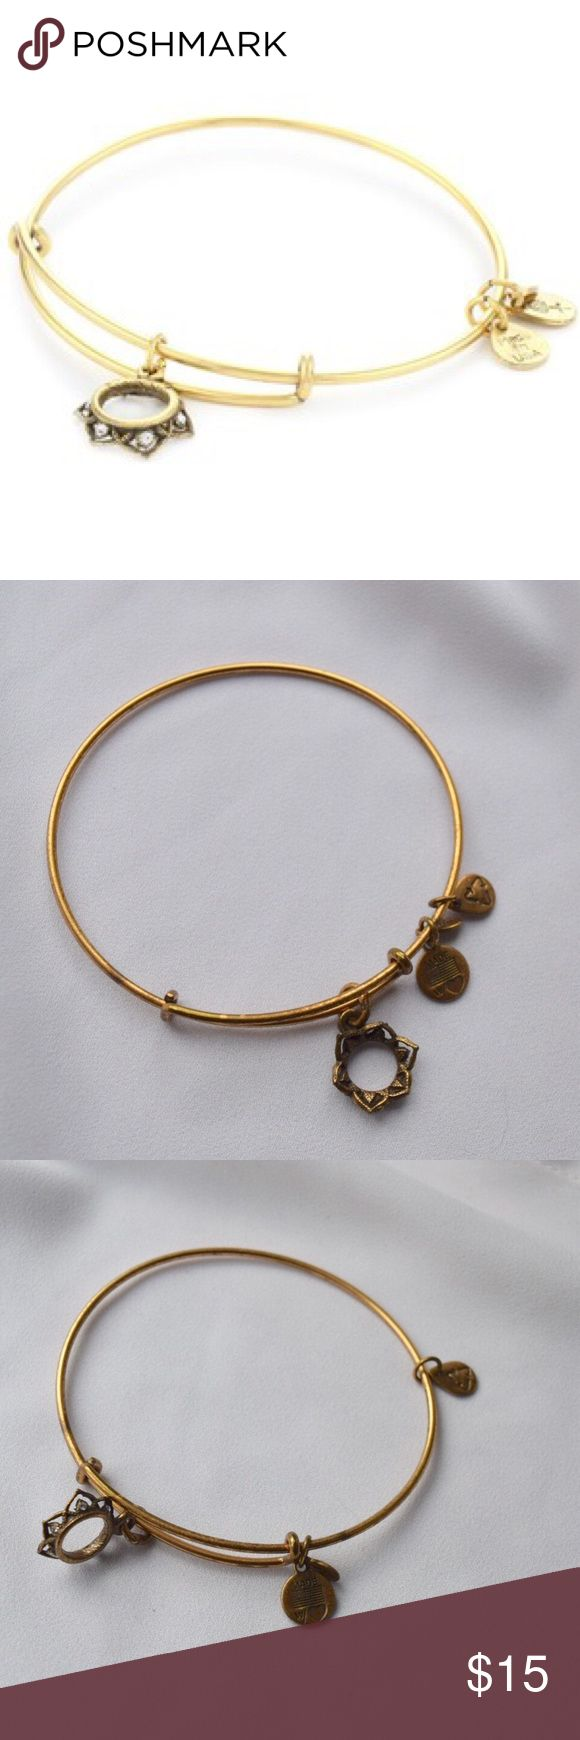 Alex & Ani Queen's Crown Charm ALEX & ANI: Self confidence and authority blossom from within. Wear this charm to take charge and be all you can be. 🔸🔸 great condition and small diamonds in the crown itself. Alex & Ani Jewelry Bracelets